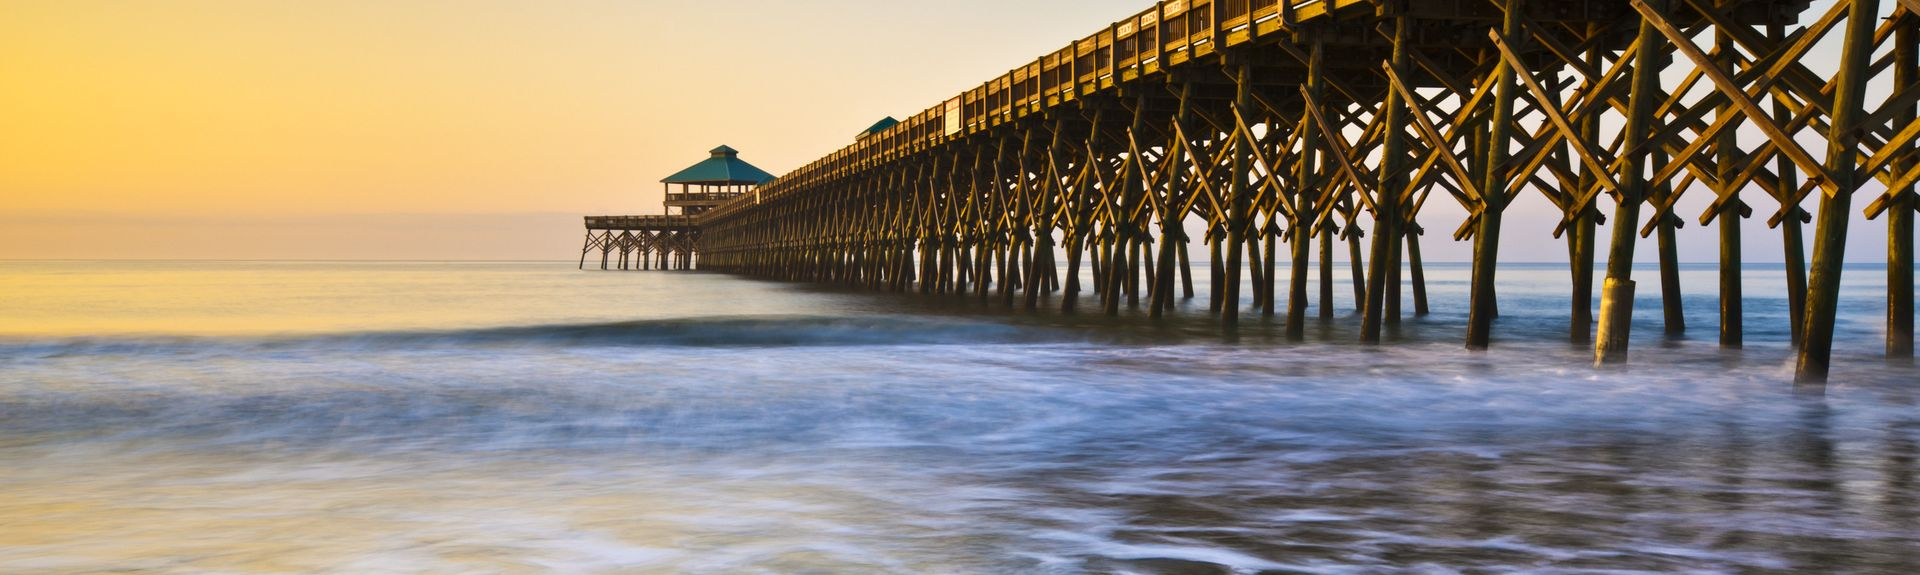 Folly Beach, South Carolina, United States of America